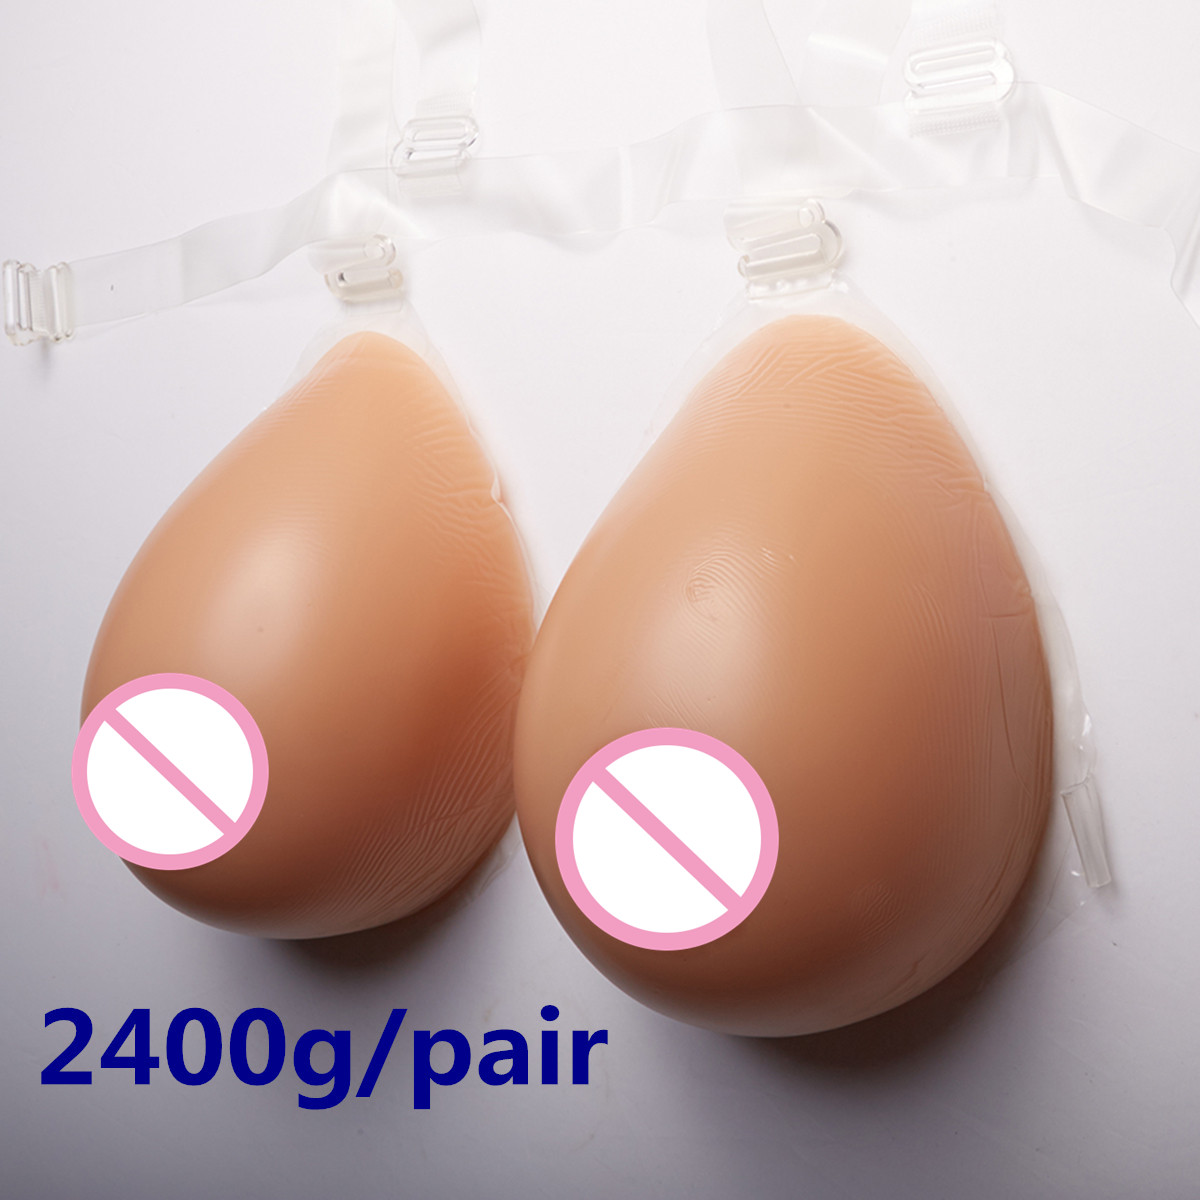 Transgender Silicone Breast  2400g/pair Brown Realistic Breast Forms Artificial Breast Fake BoobsTransgender Silicone Breast  2400g/pair Brown Realistic Breast Forms Artificial Breast Fake Boobs